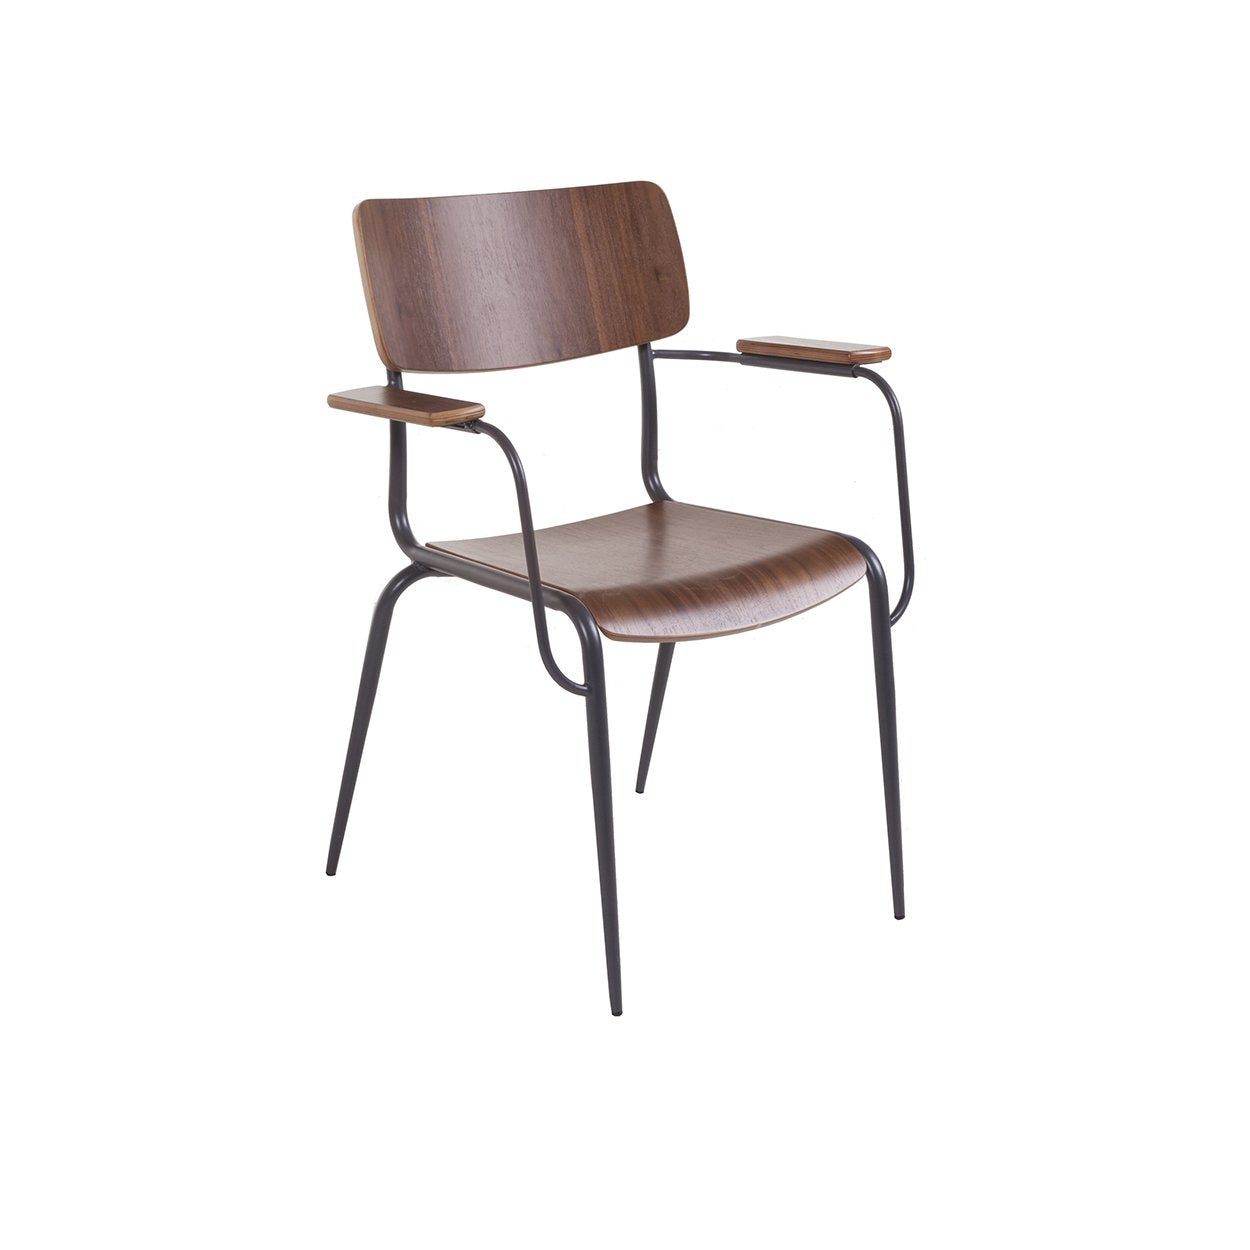 [FOC58762WALNUT] Hummel Arm Chair